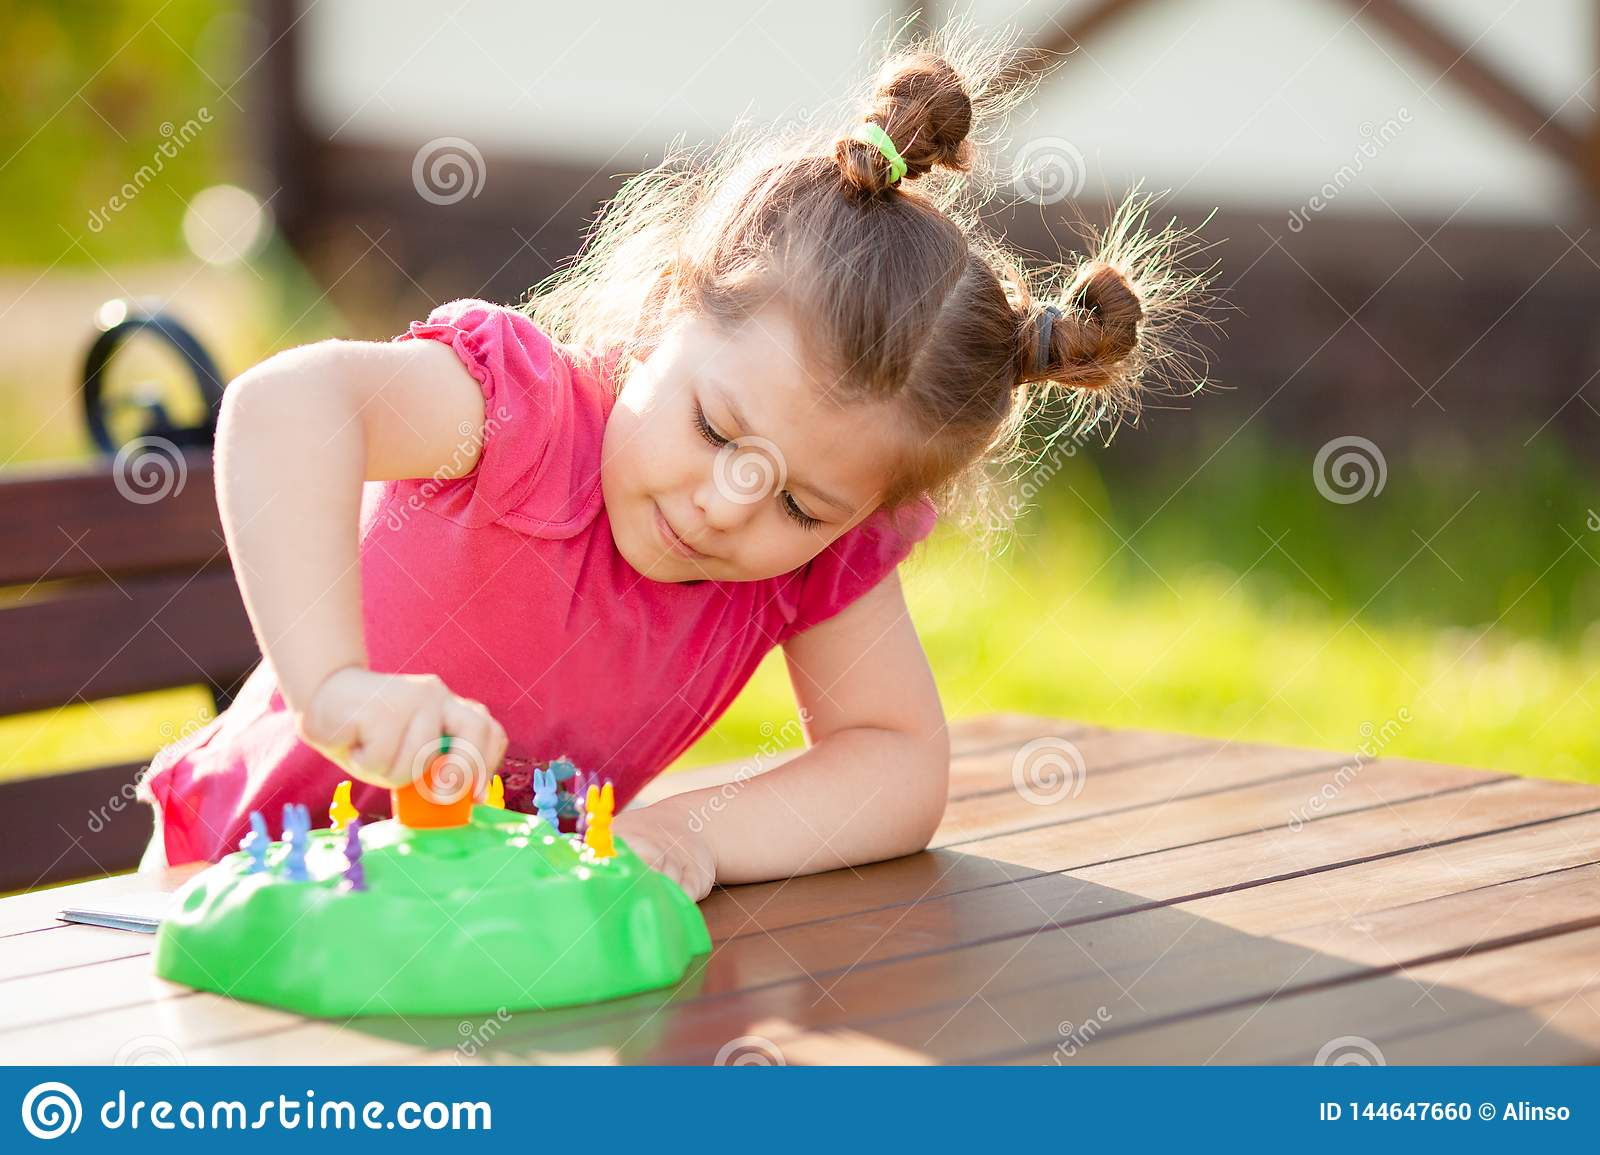 Adorable little girl playing board game outdoors